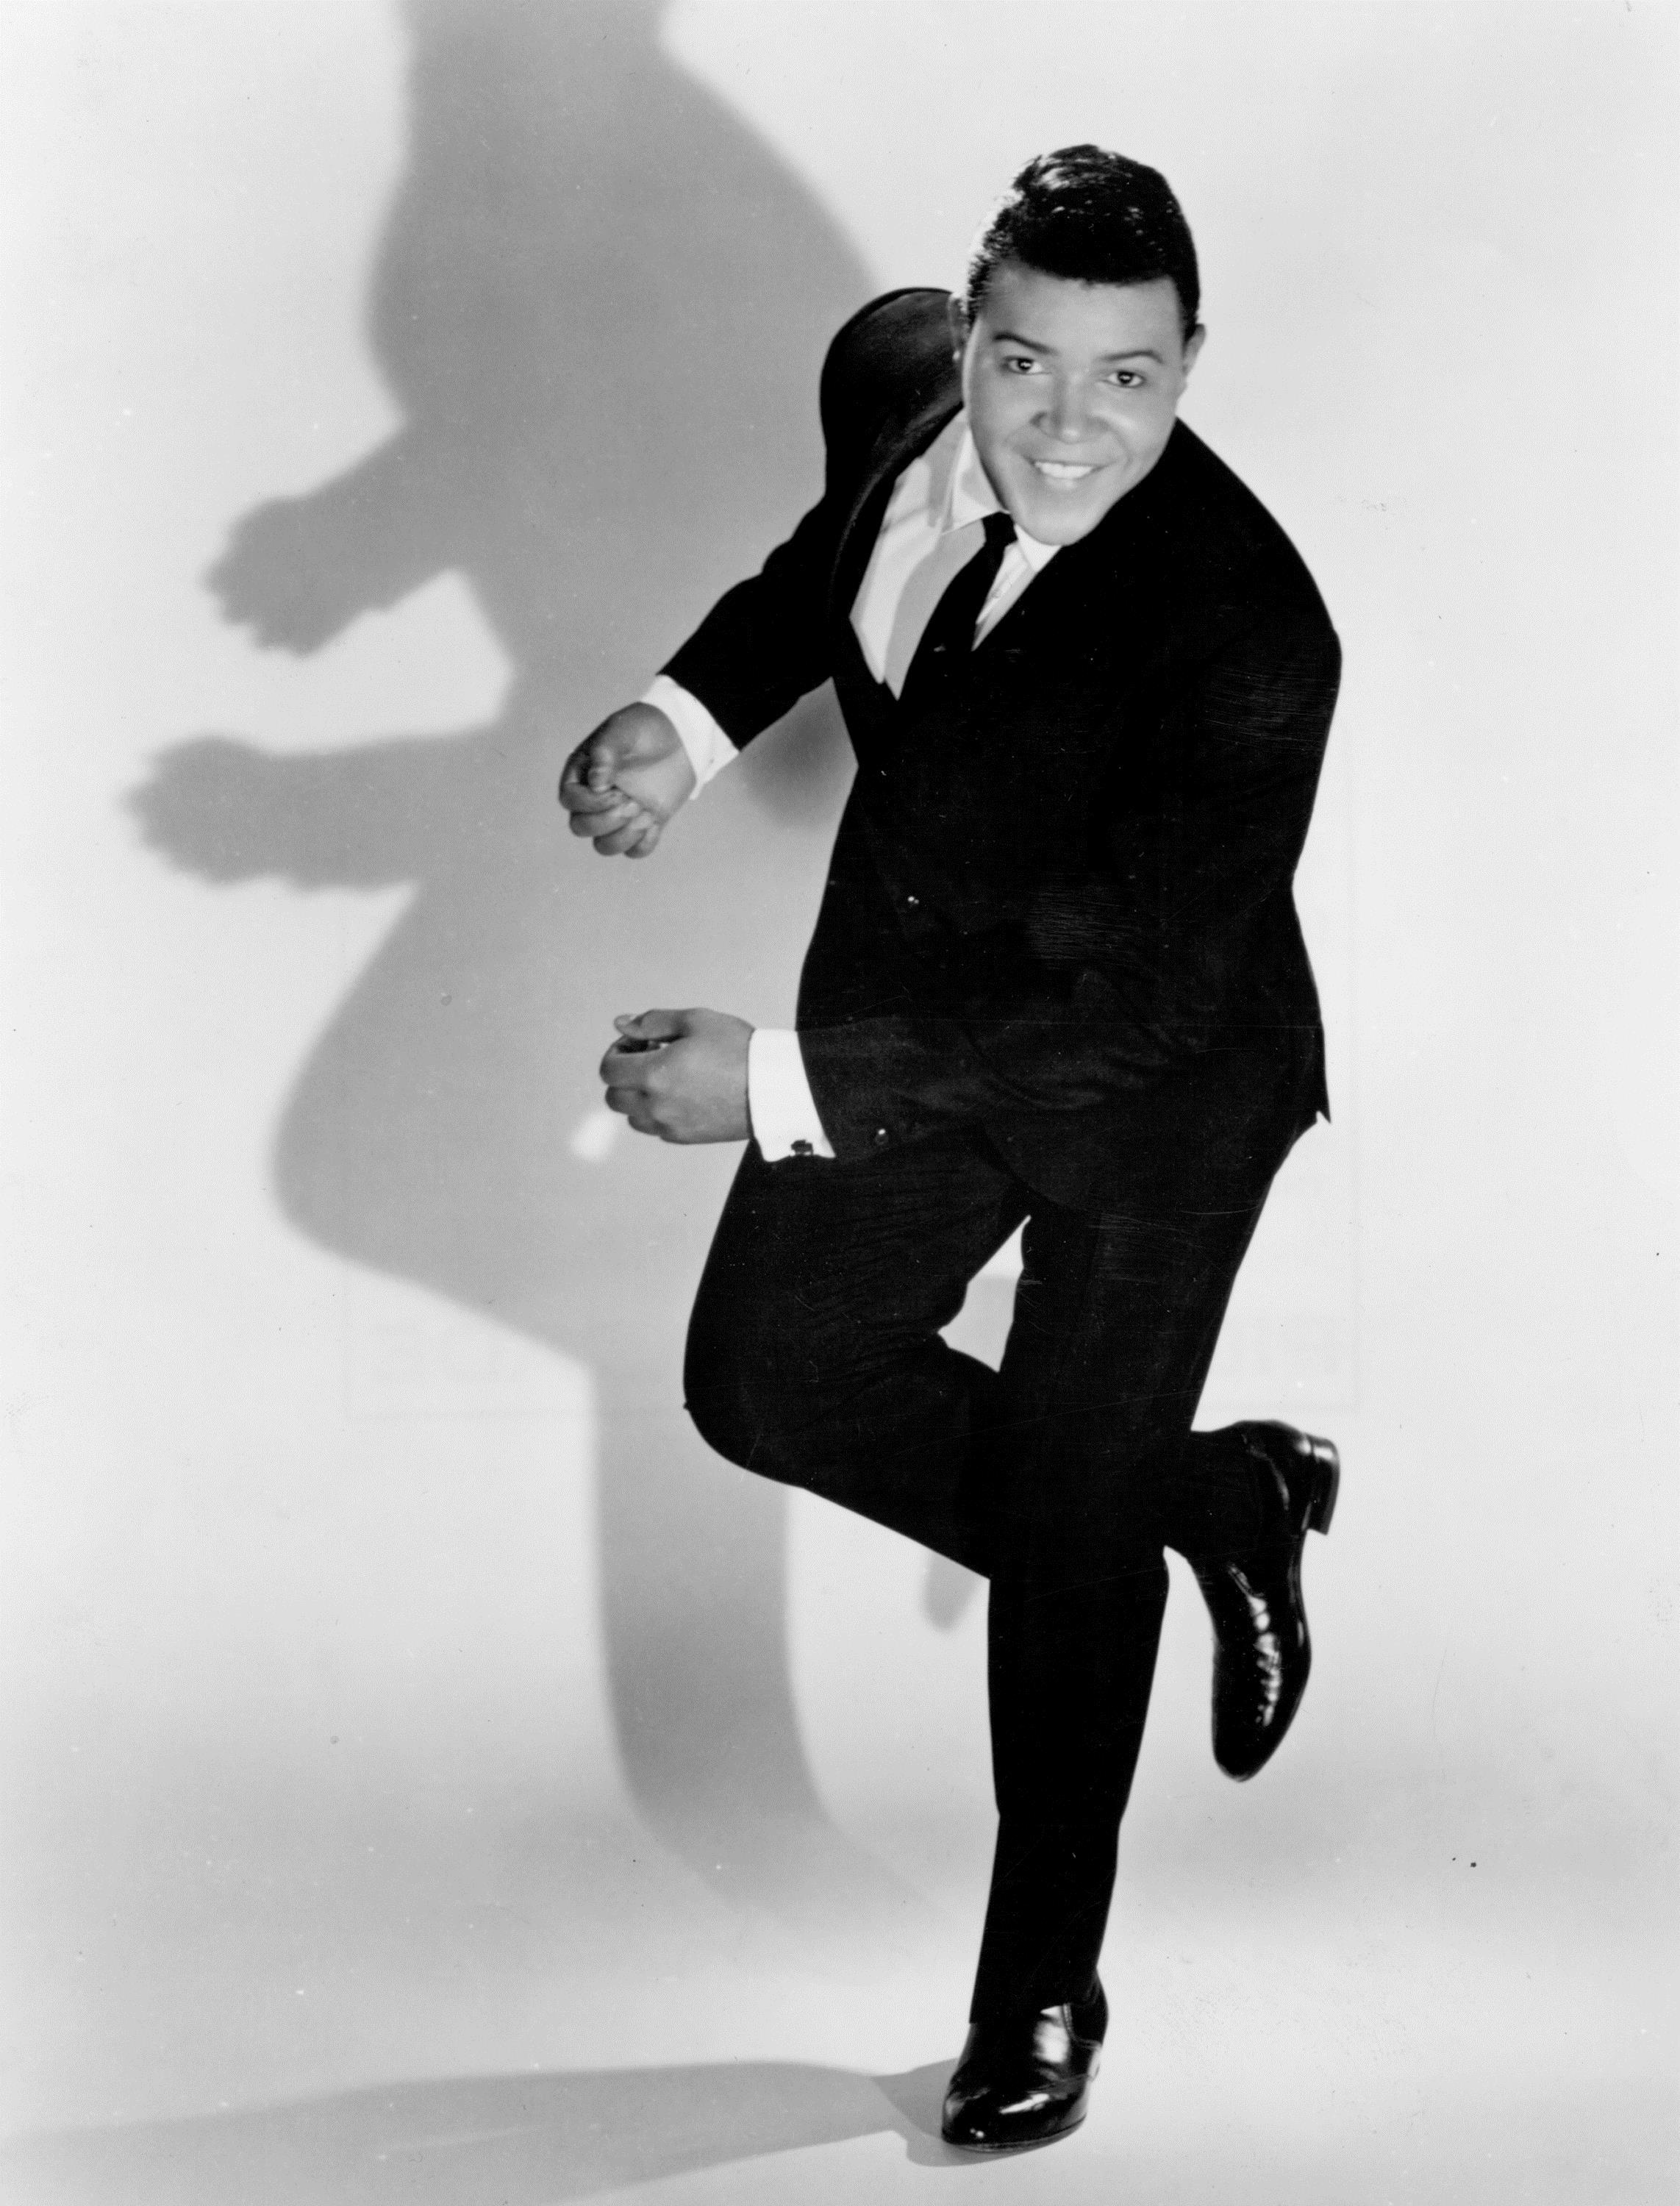 Chubby checker tv aperences